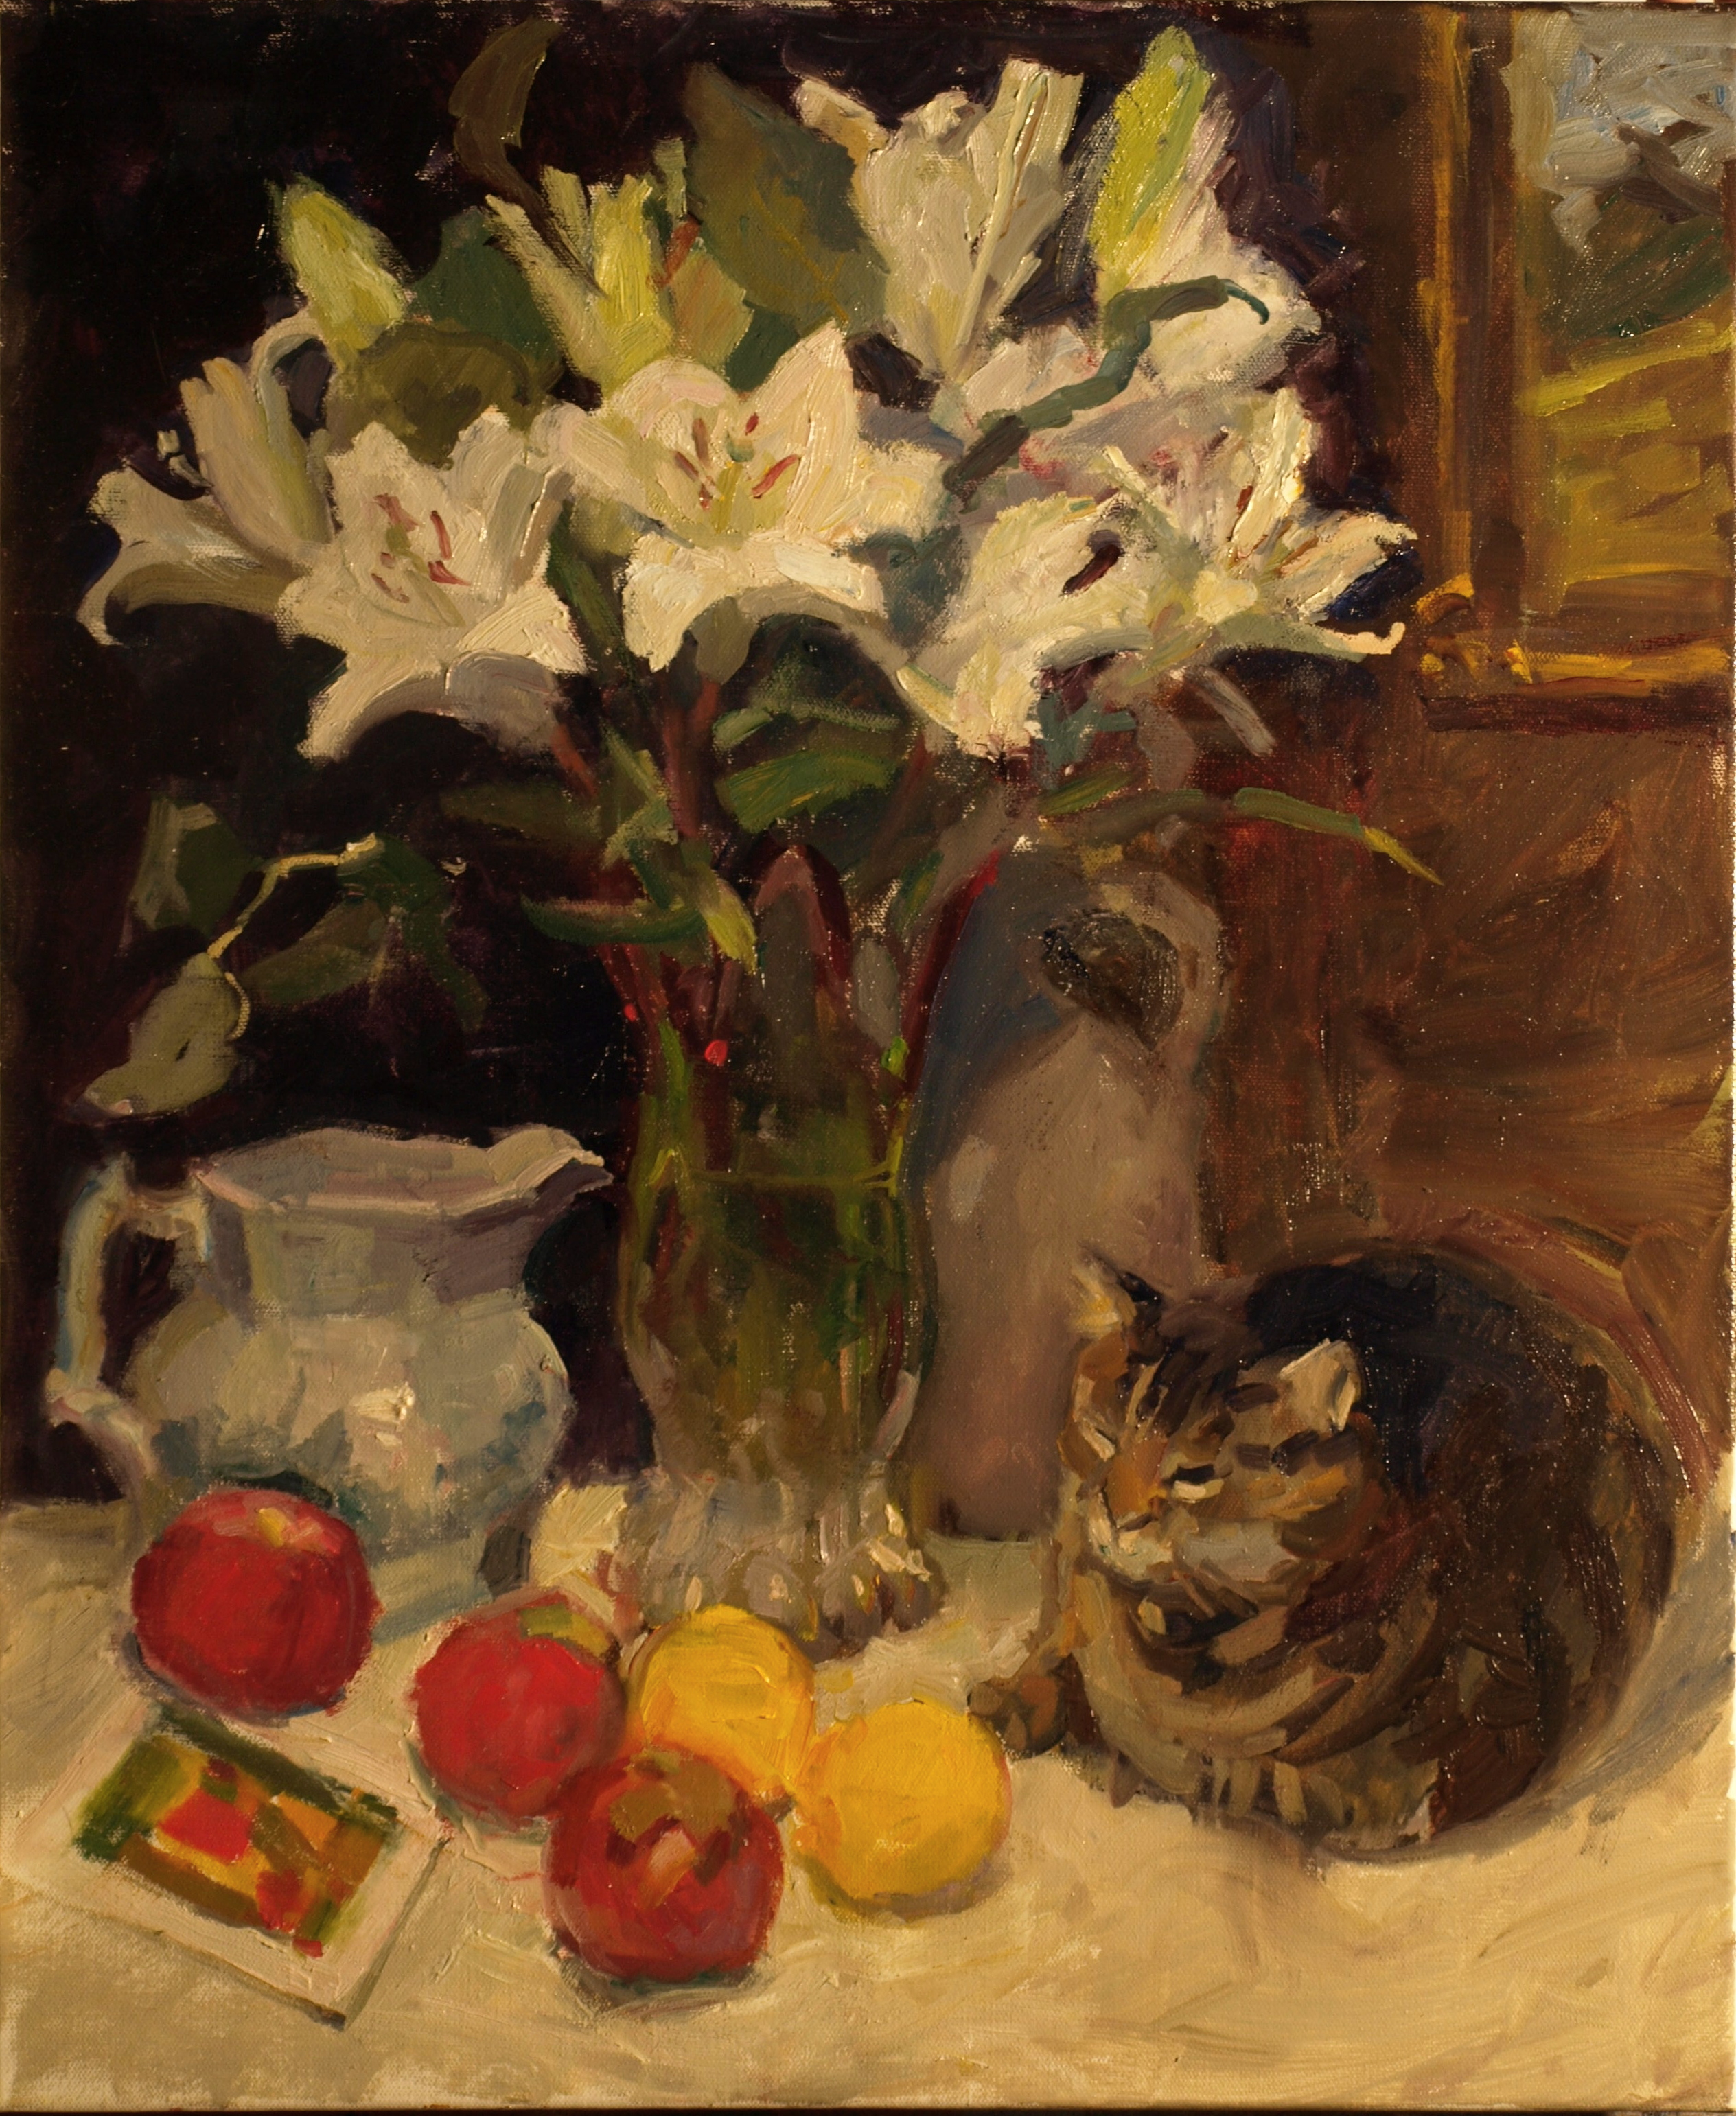 Still Life with Tabby, Oil on Canvas, 24 x 20 Inches, by Susan Grisell, $750